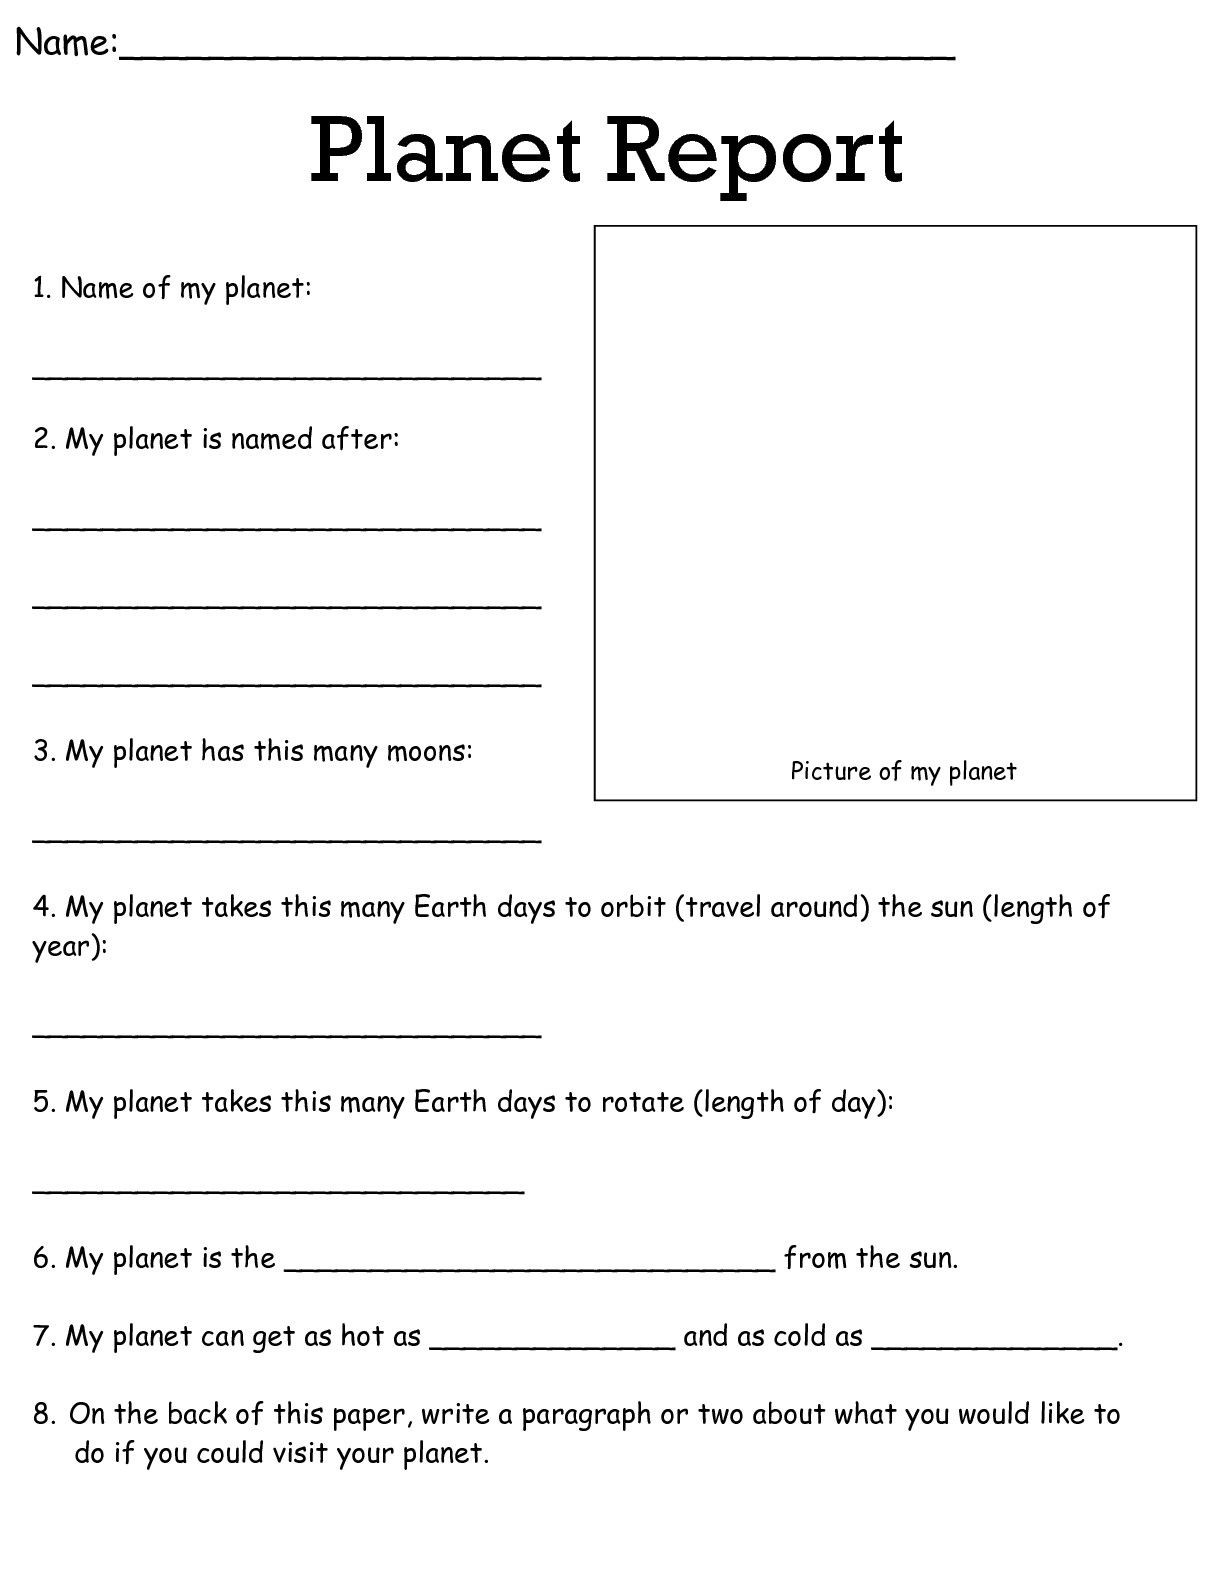 Science Worksheets for 7th Grade 5th Grade Science Worksheets with Answer Key